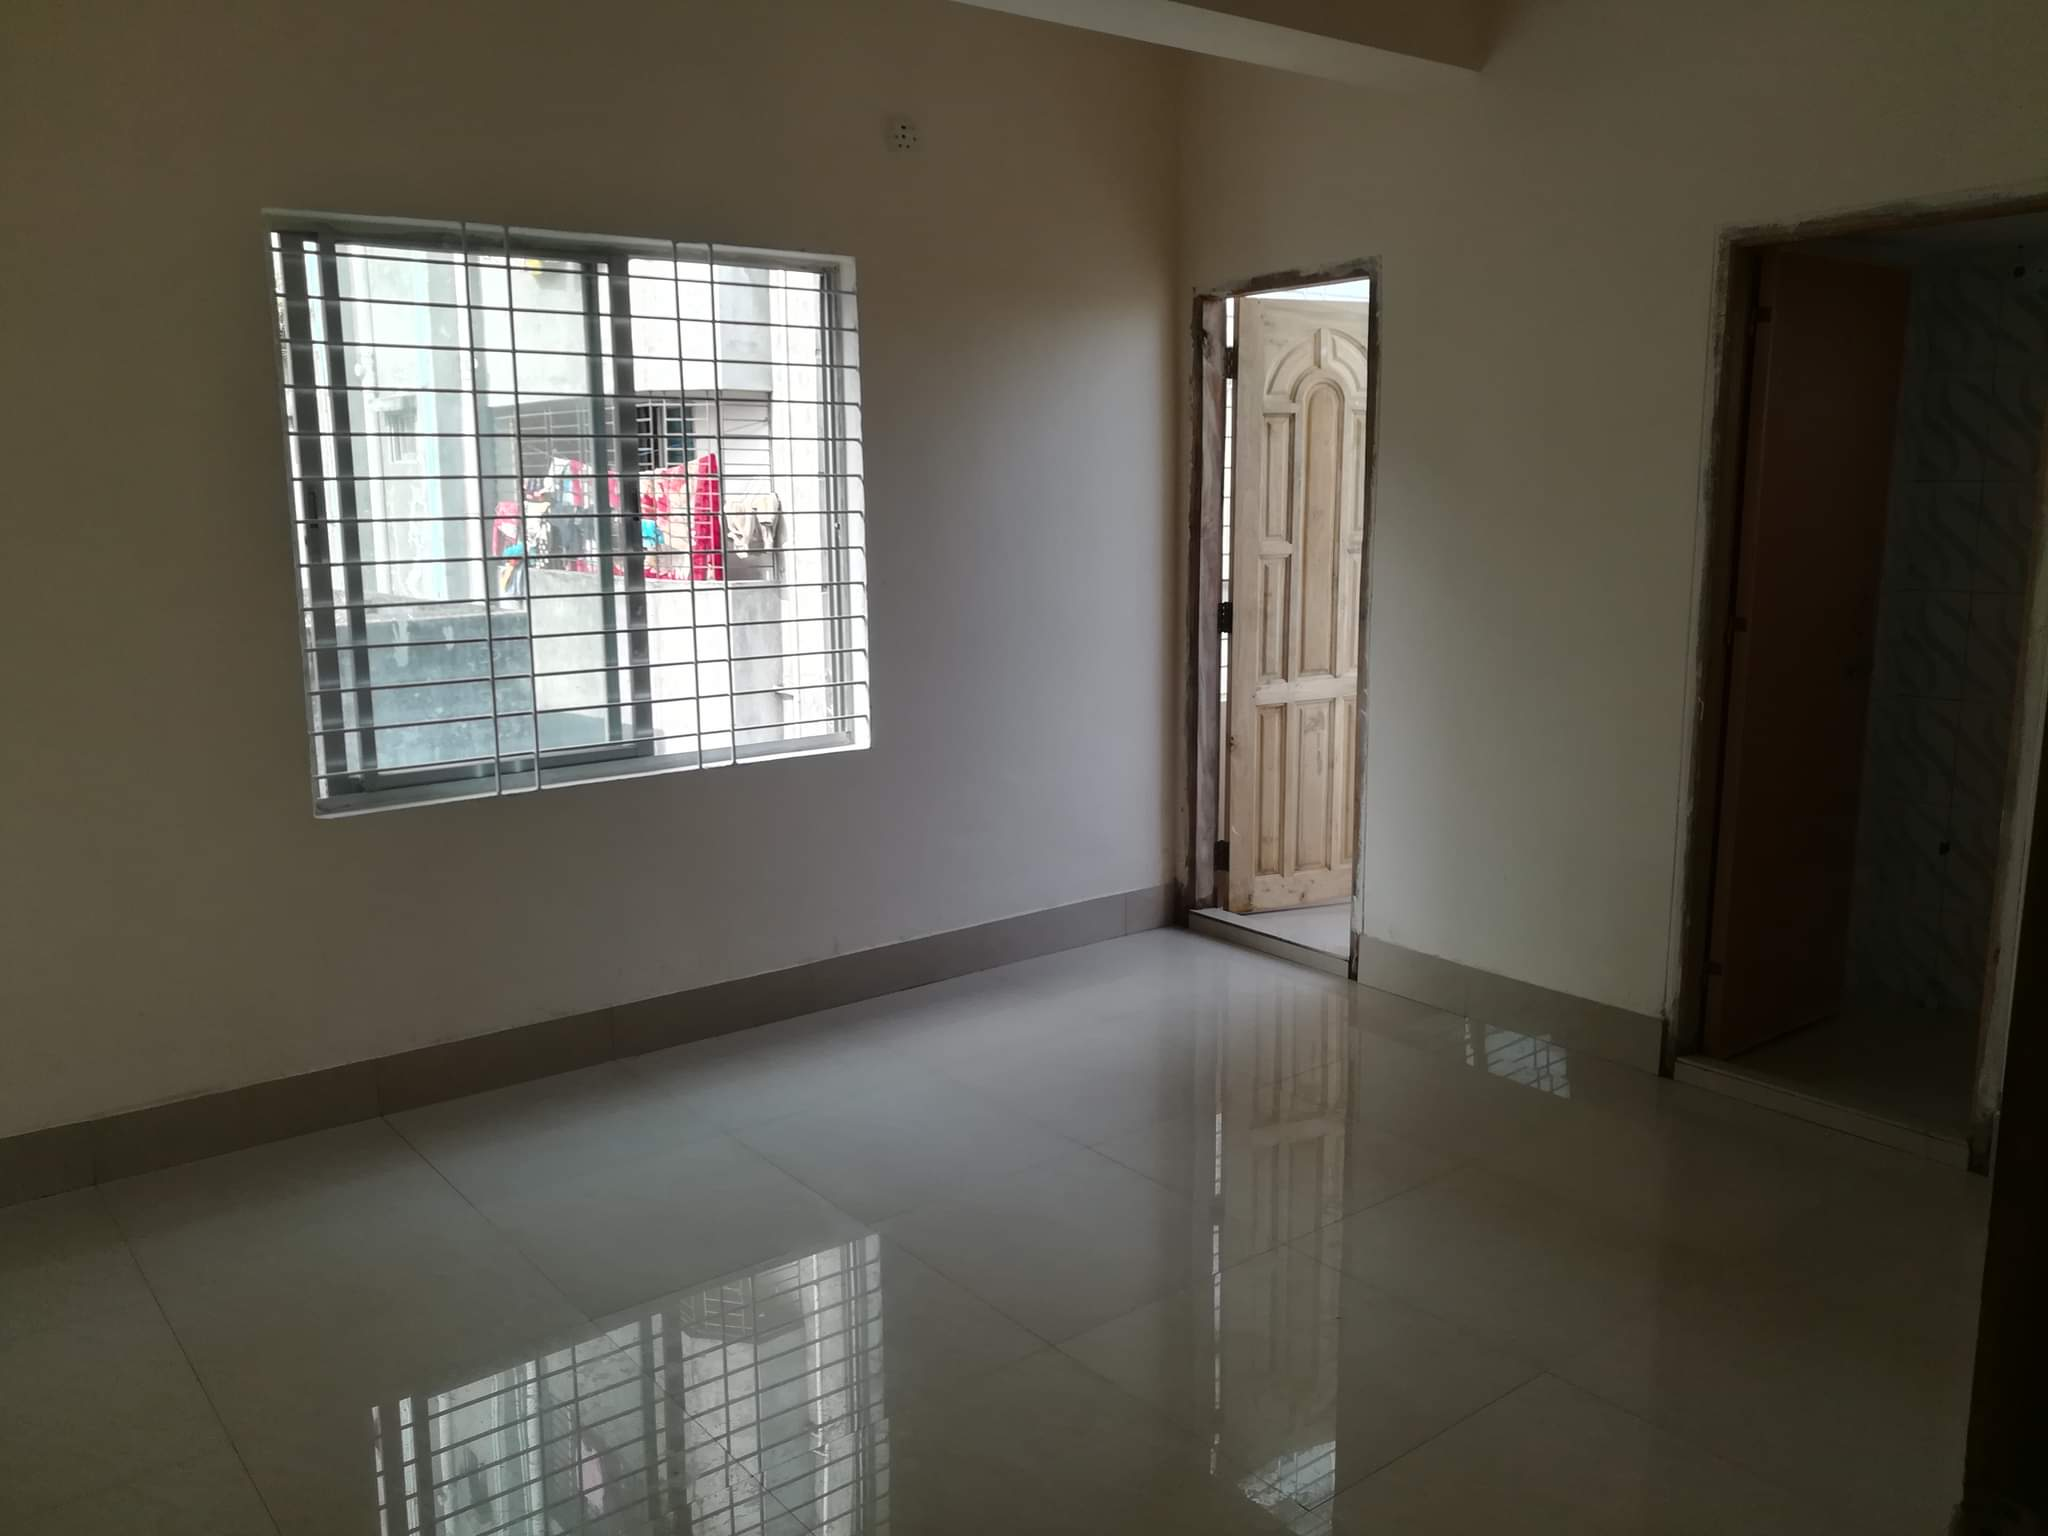 1077-sft-apartment-for-sale-in-khilgaon-5th-floor-141926